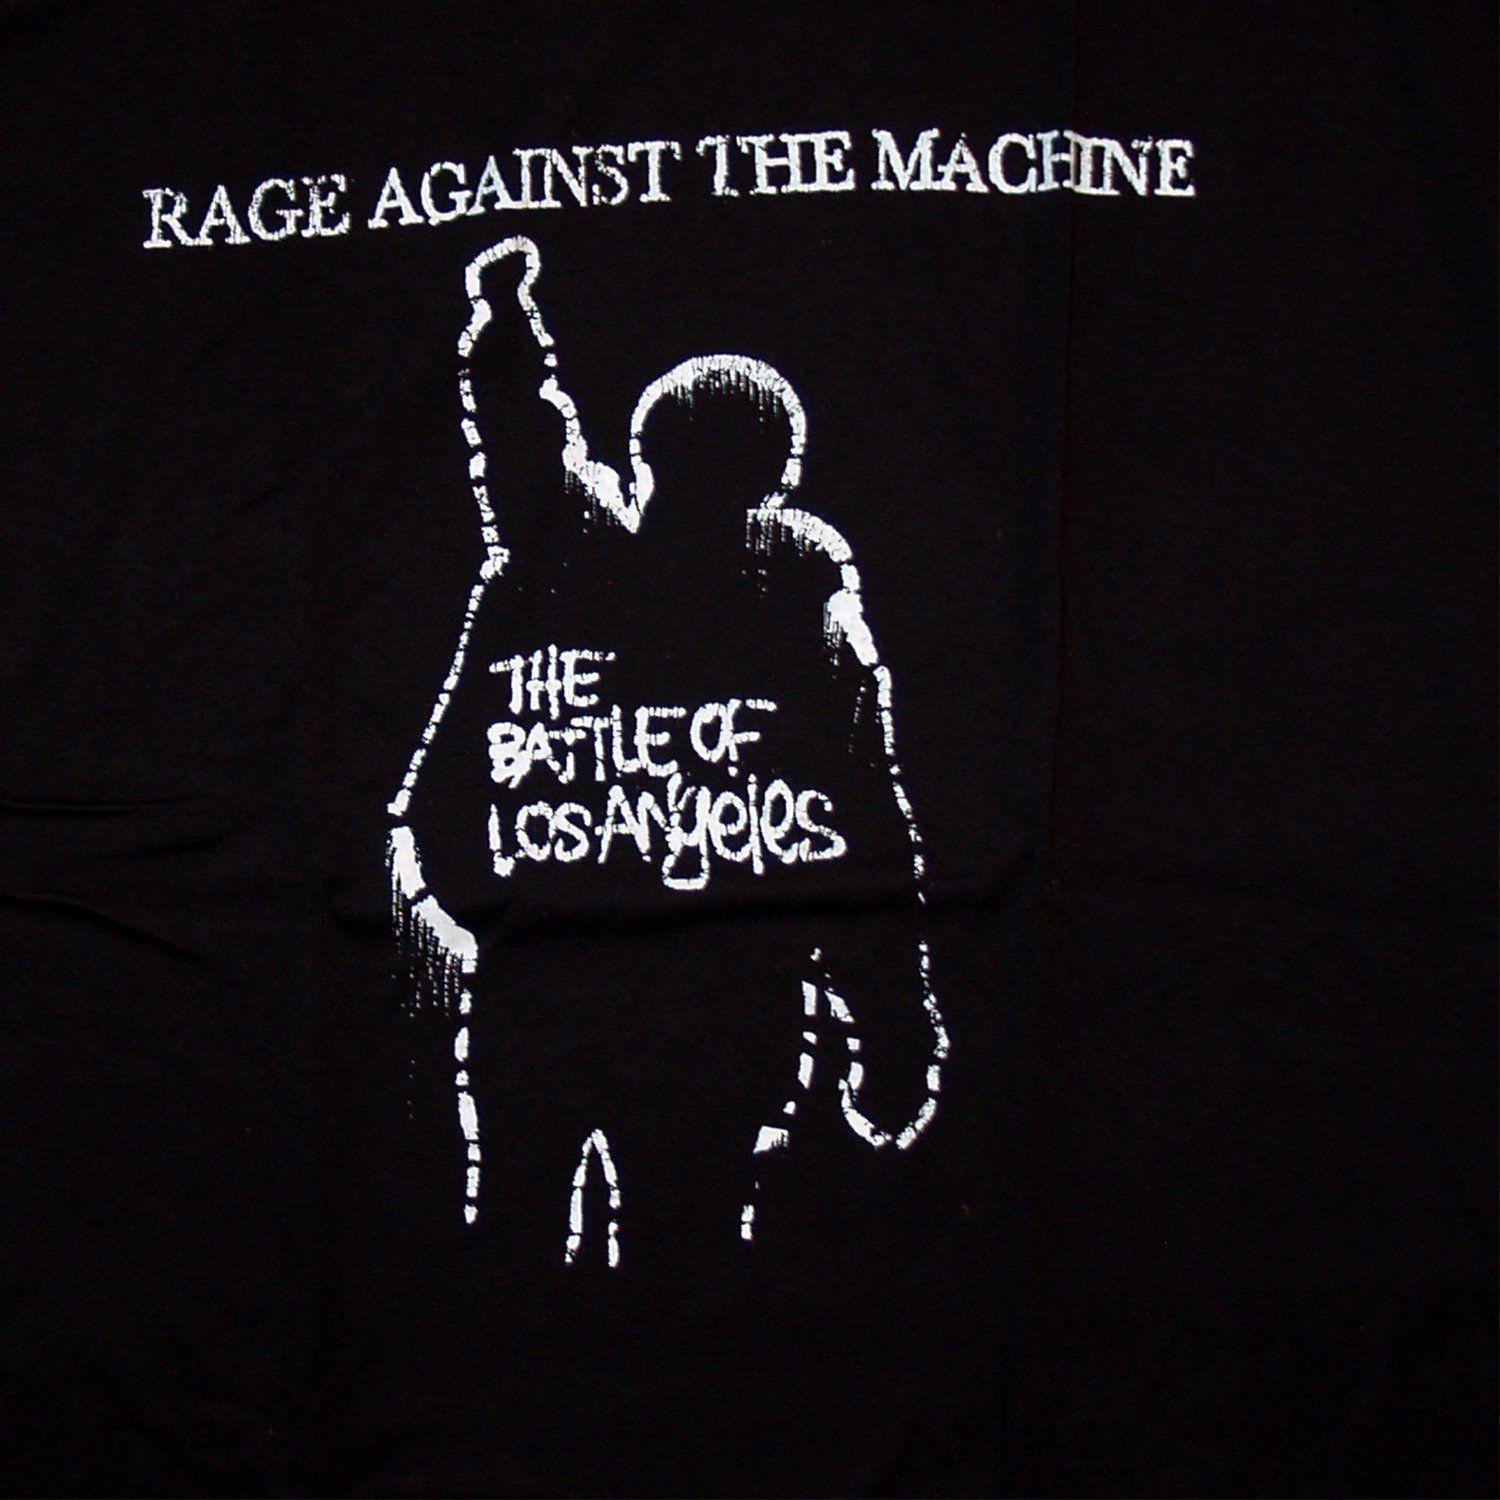 Rage against the machine android wallpapers hd